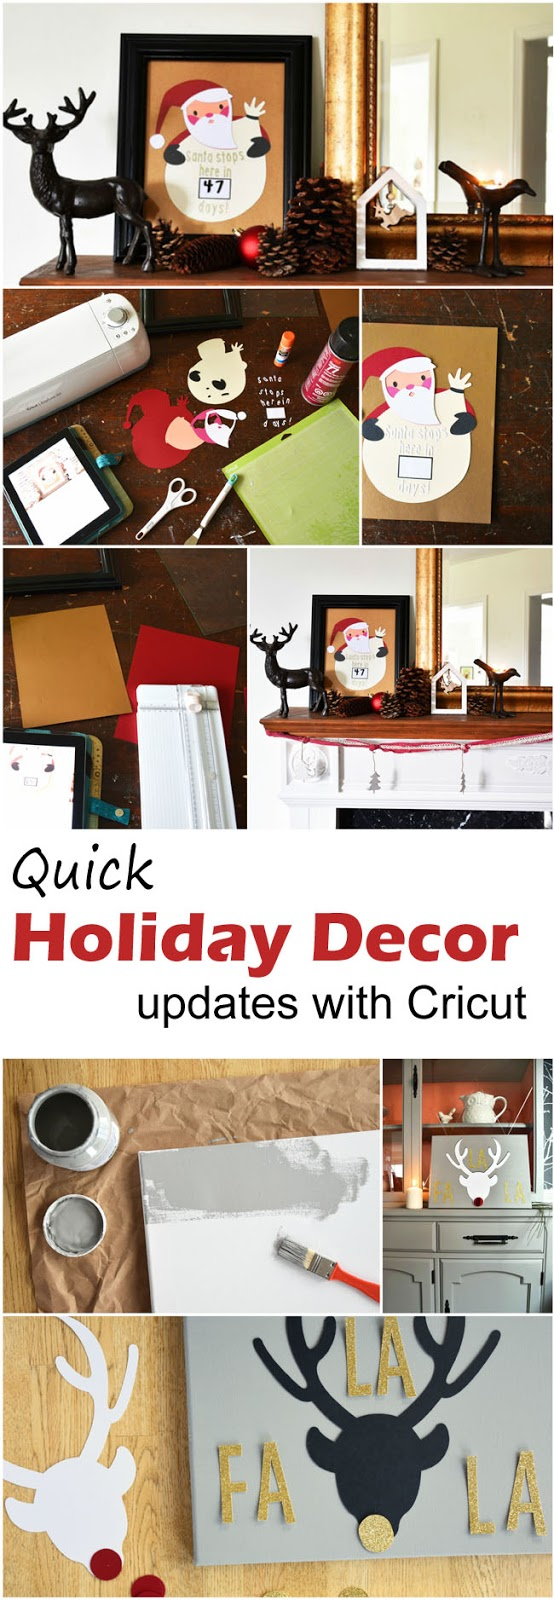 Quick, fun holiday decor projects to cut with your Cricut! #crafts #DIY #Christmas #Cricut